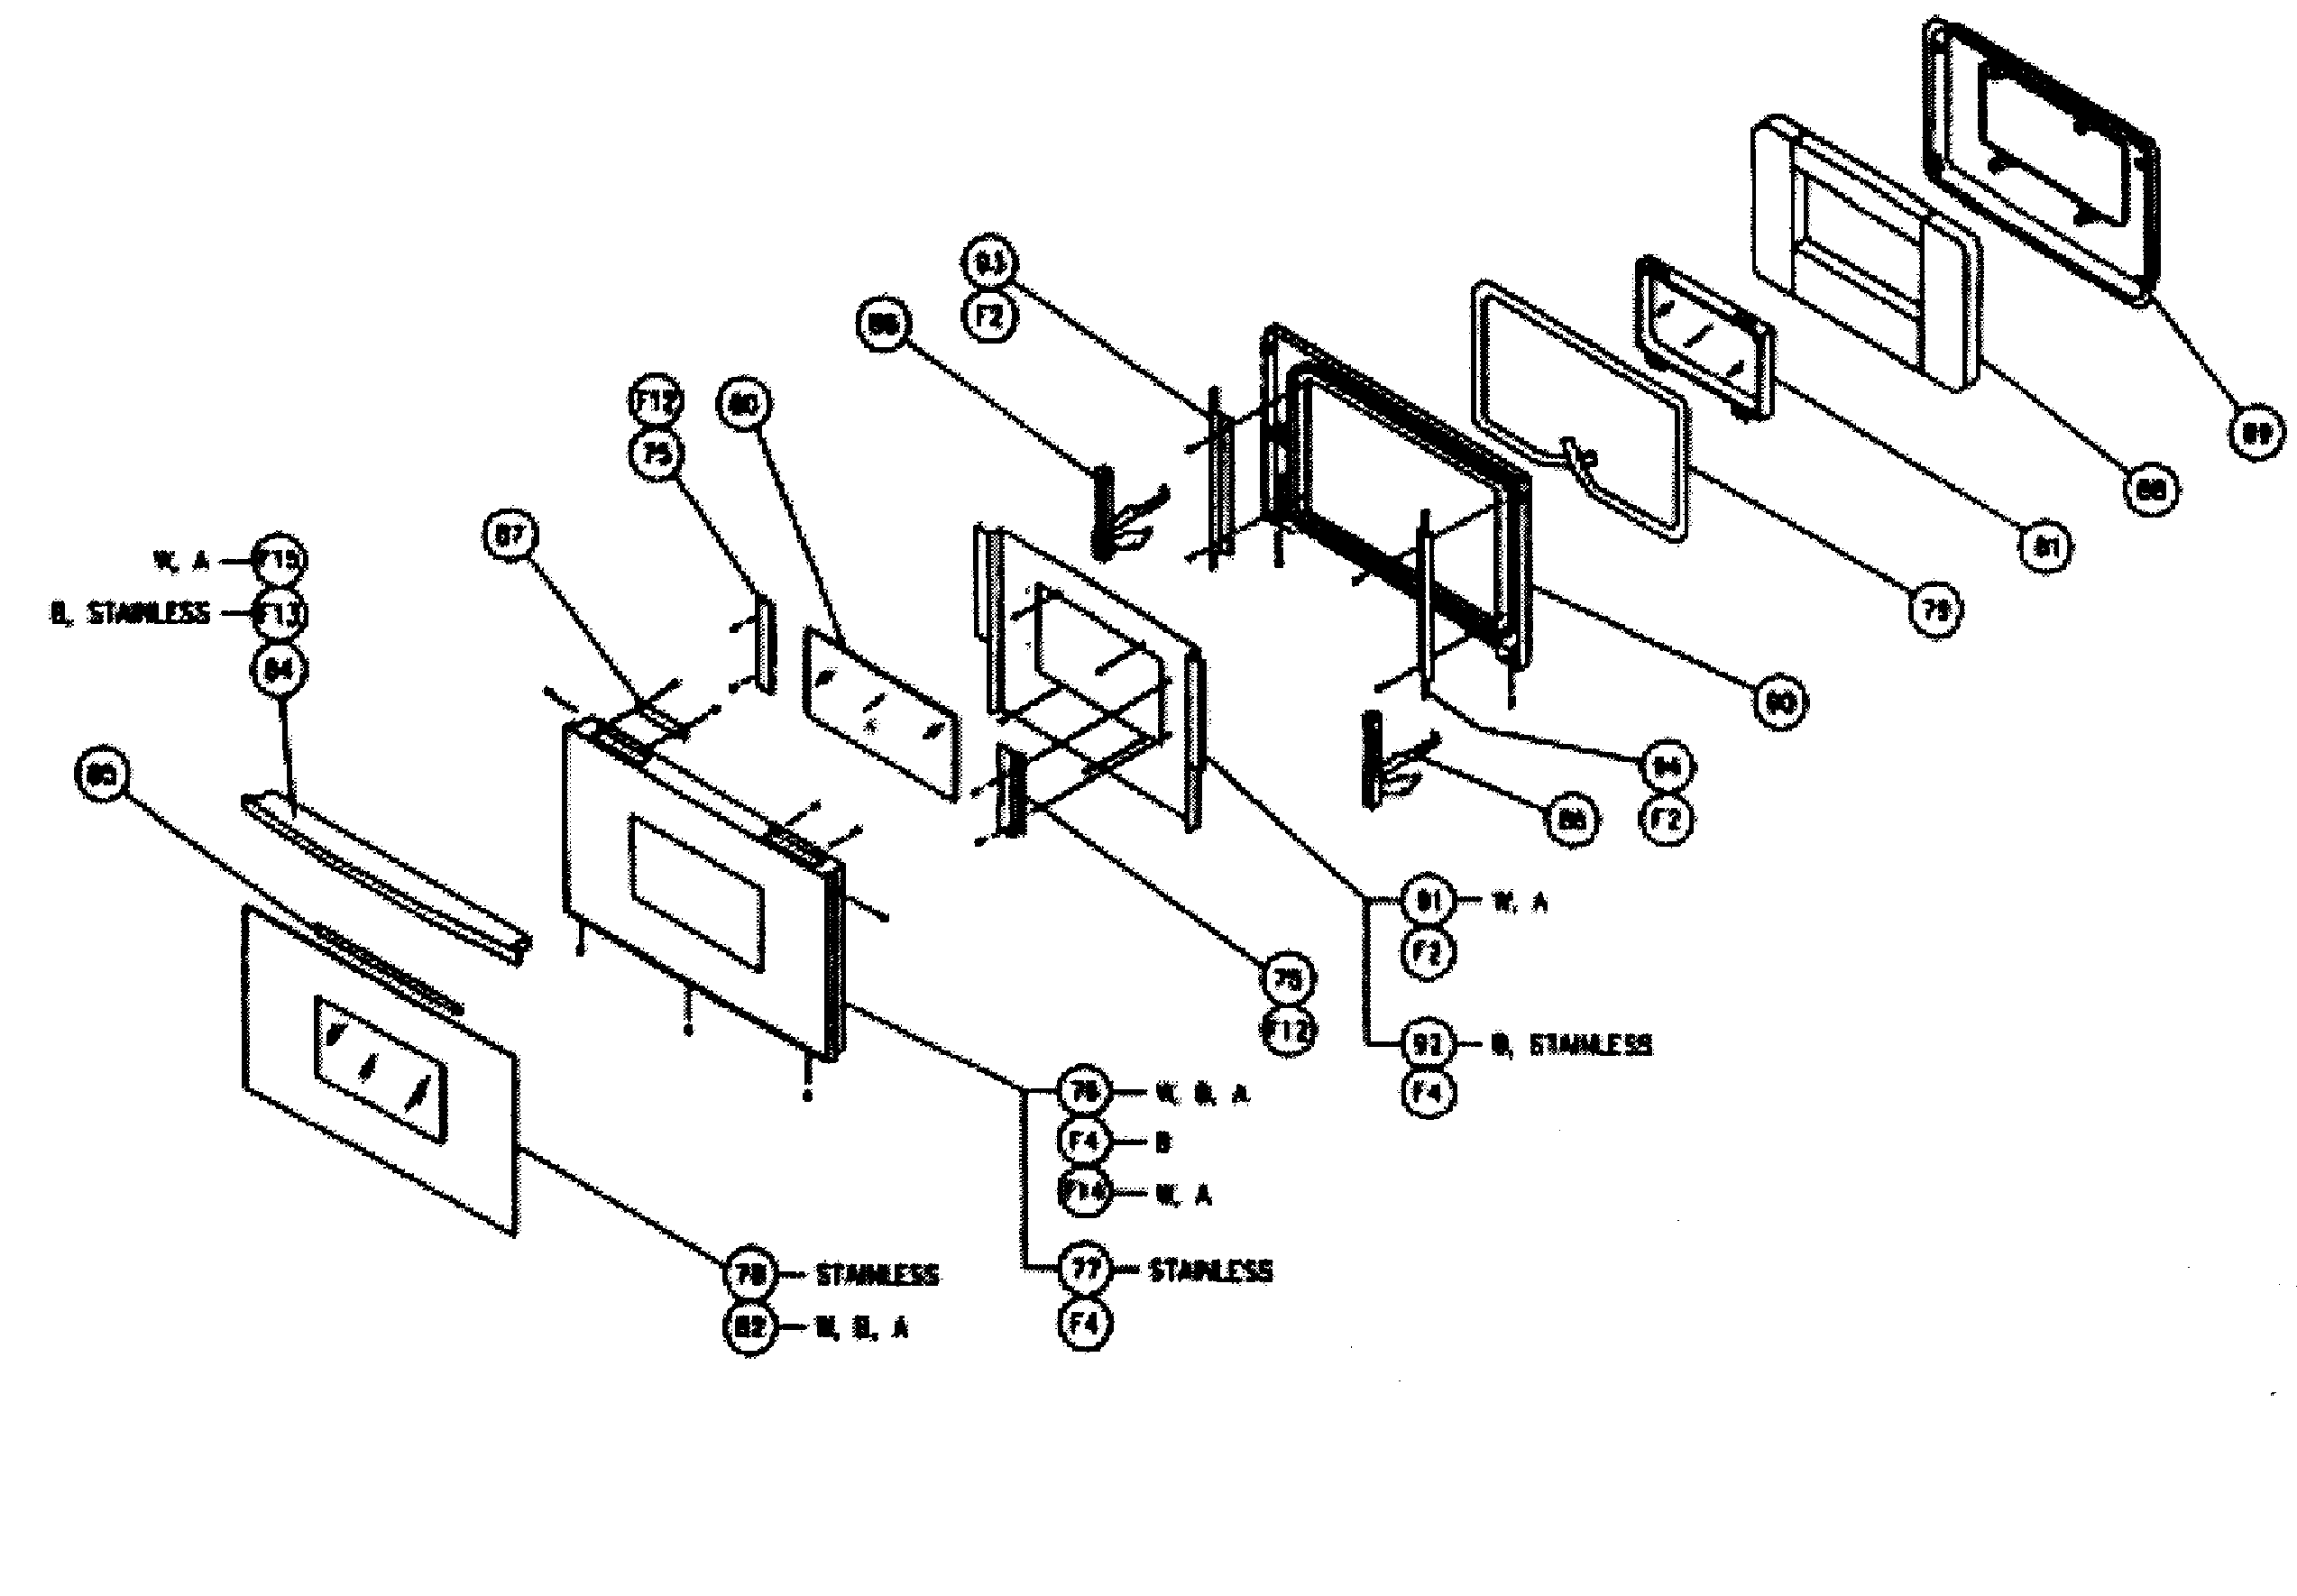 dpdt relay wiring diagram fog light no latching database dacor cps230 oven timer stove clocks and appliance timers operation